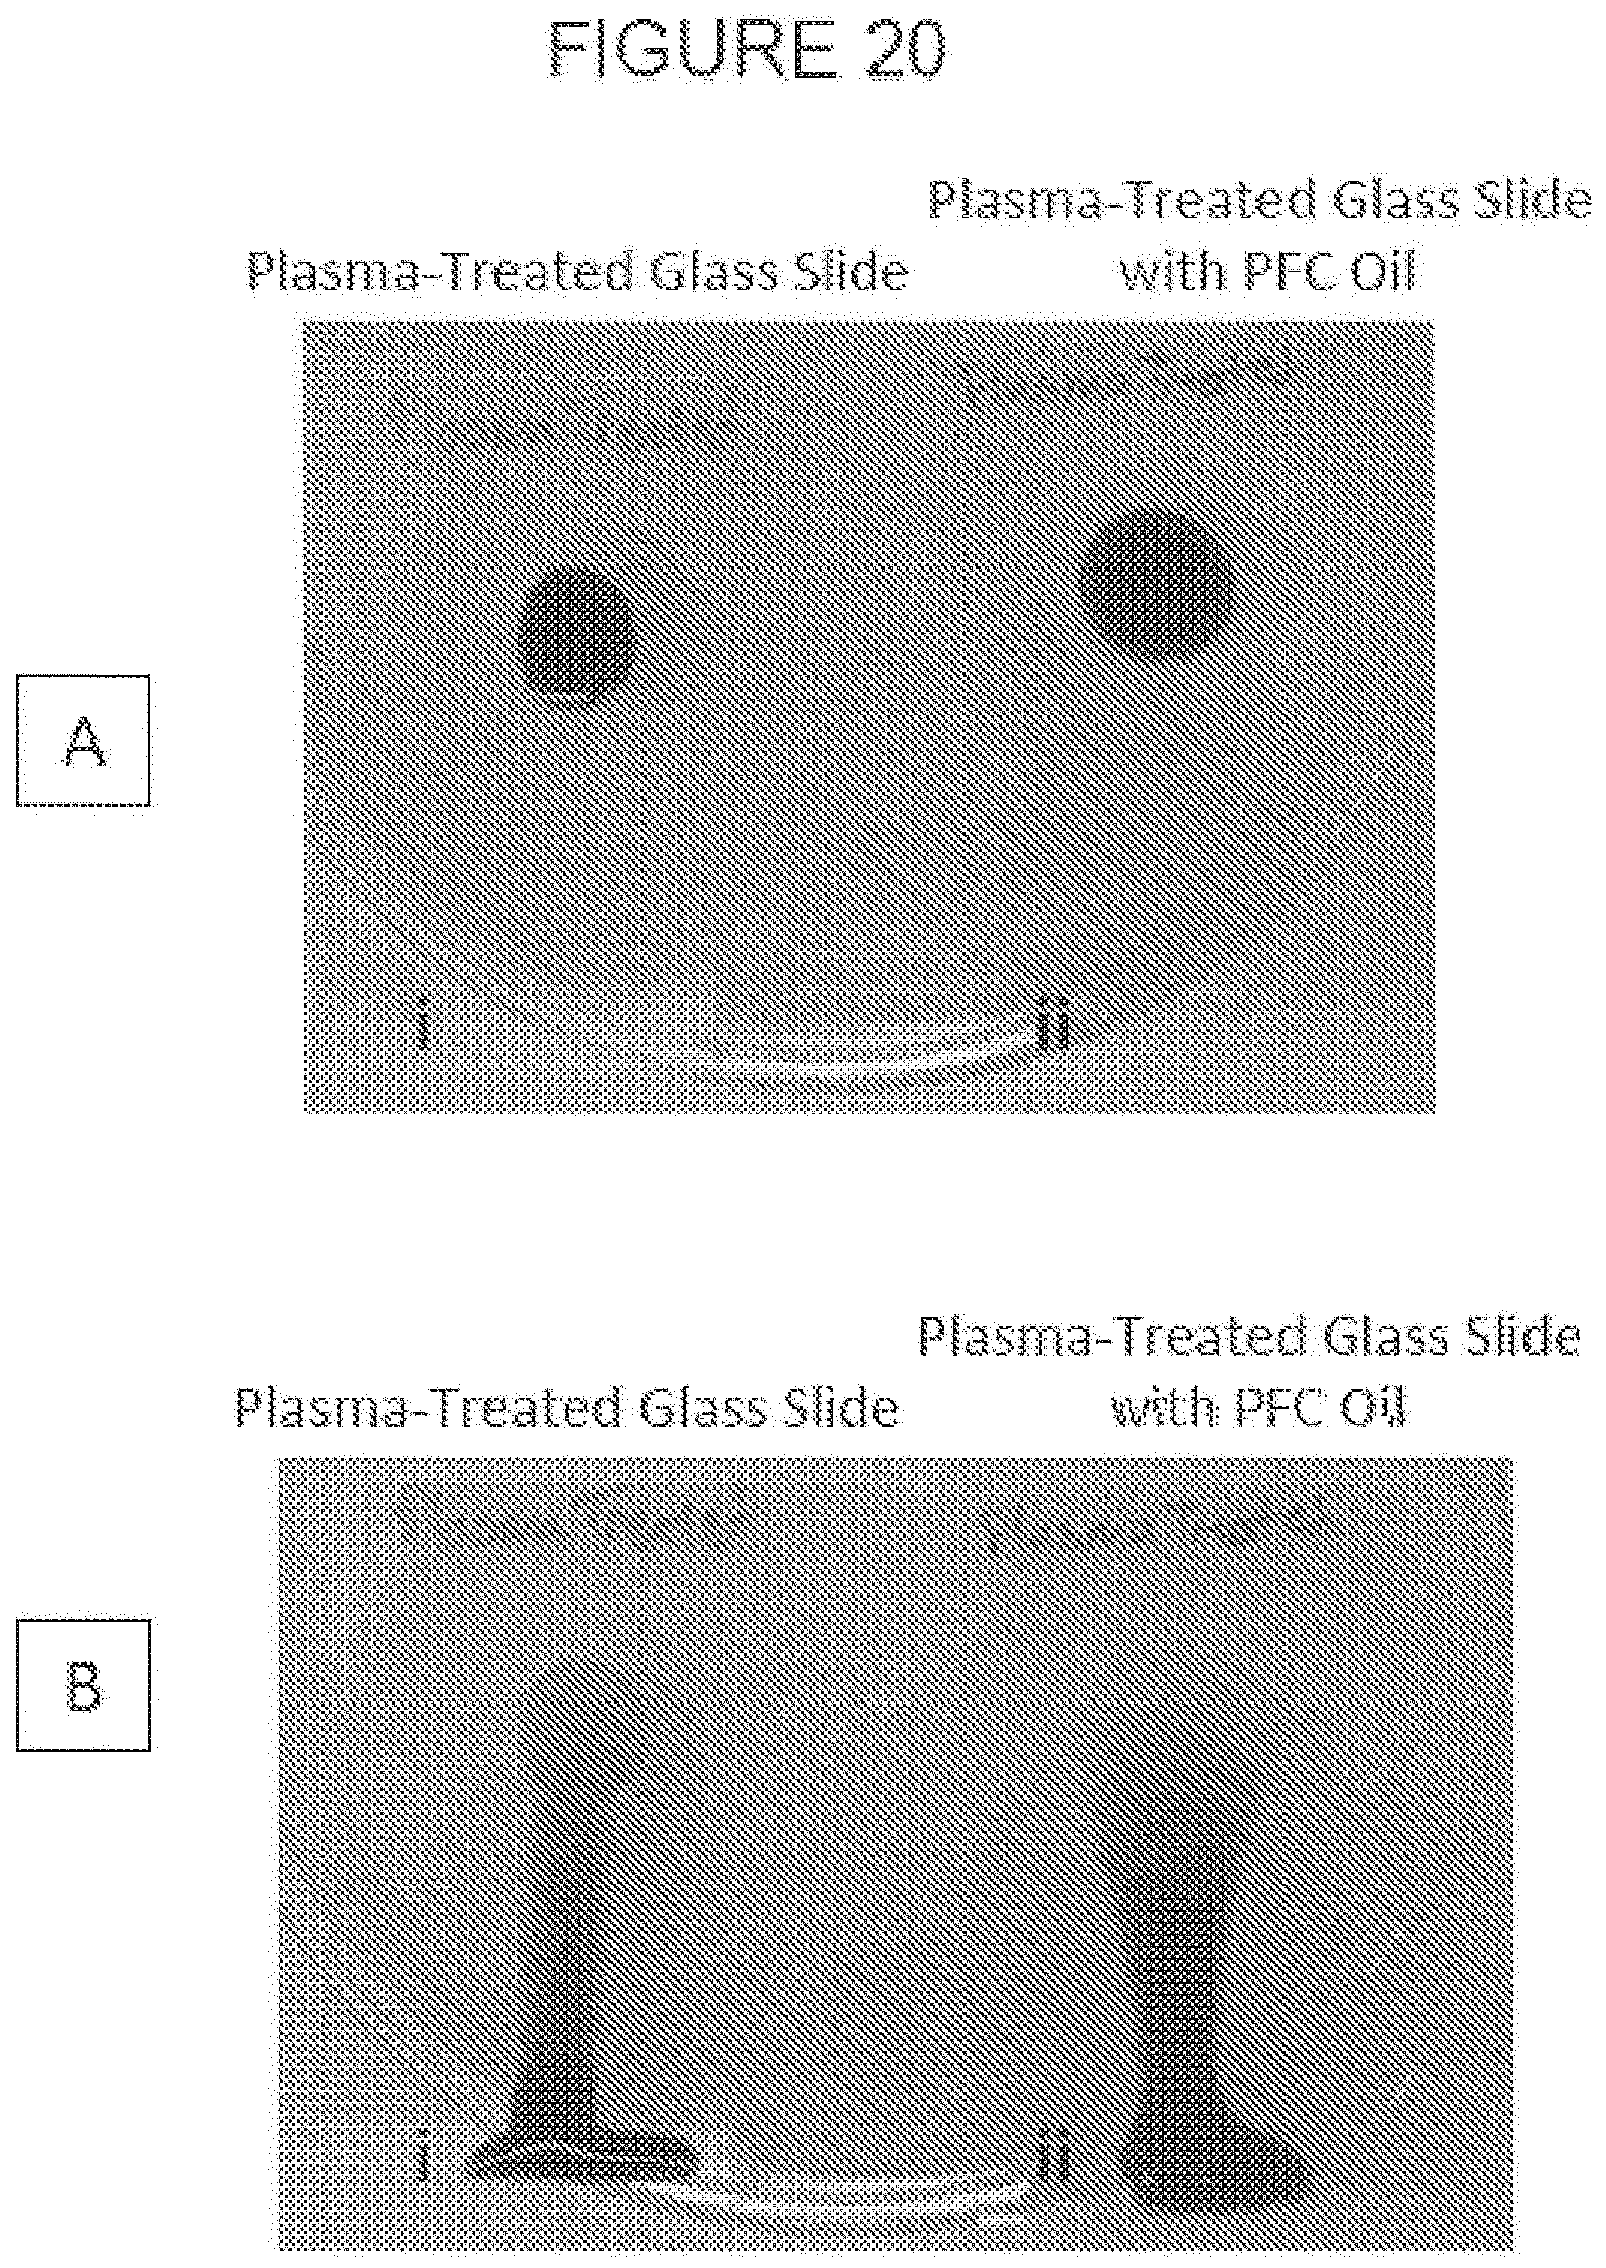 MODIFICATION OF SURFACES FOR FLUID AND SOLID REPELLENCY